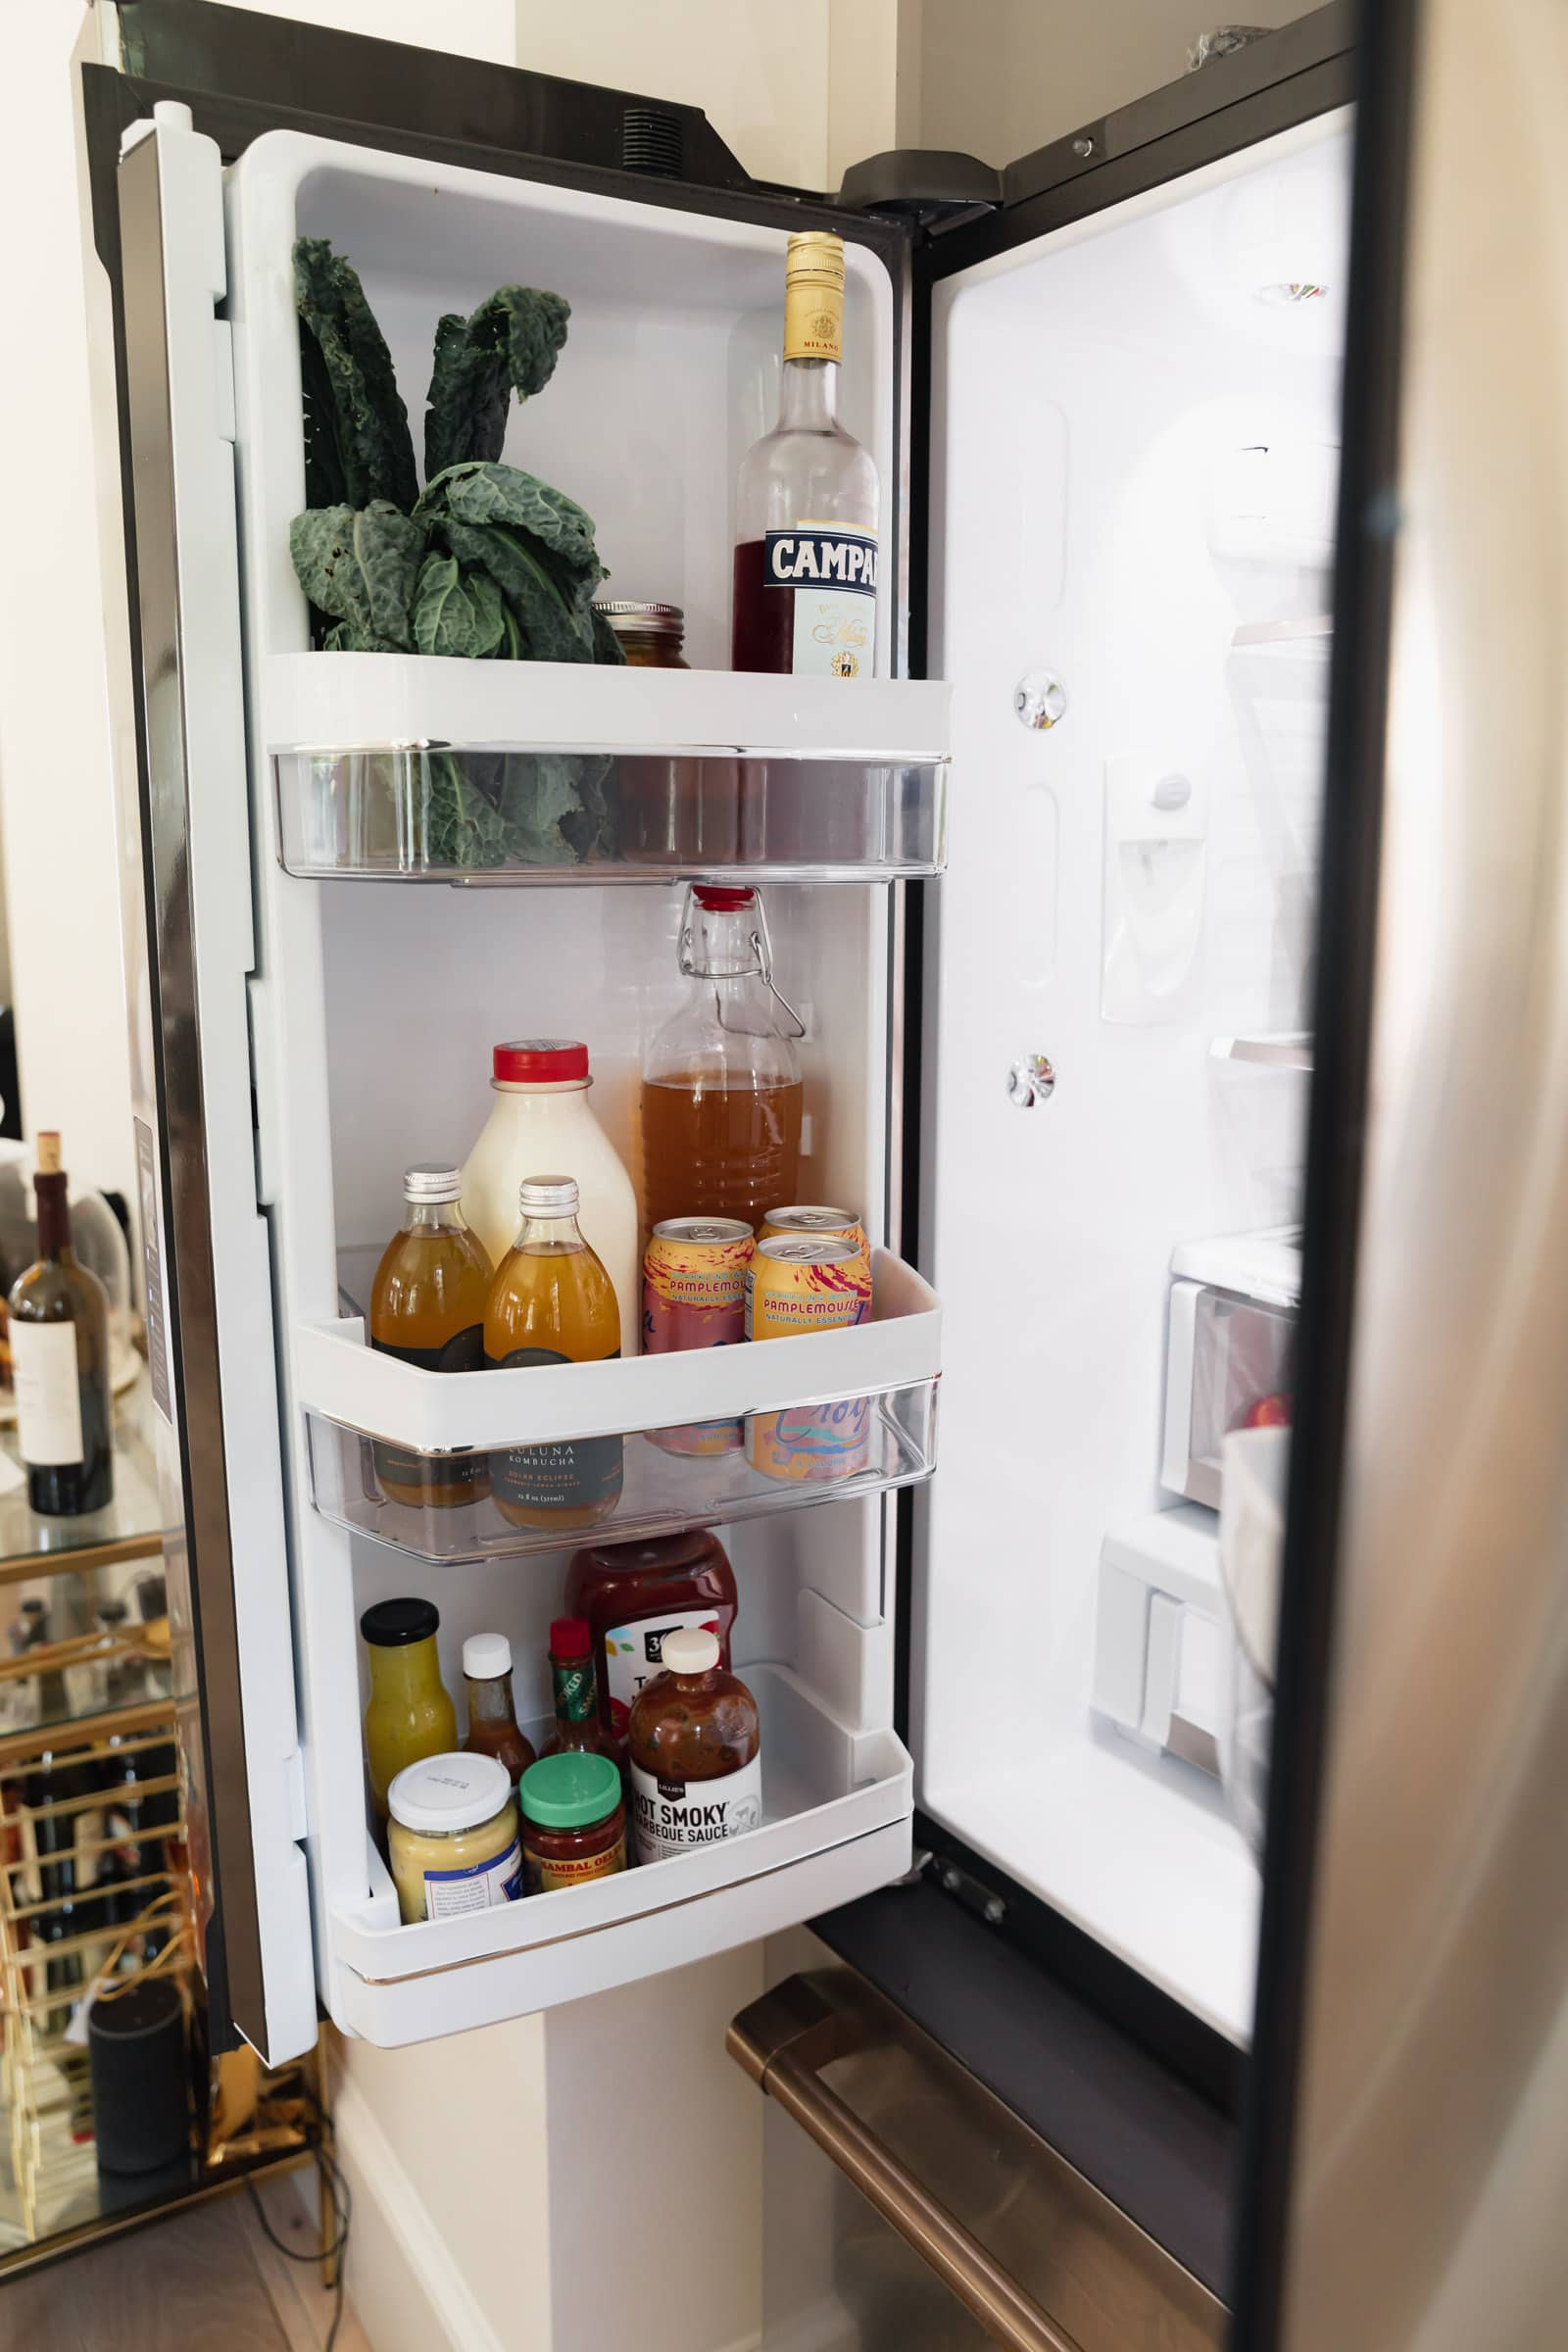 fridge door with drinks, condiments and food